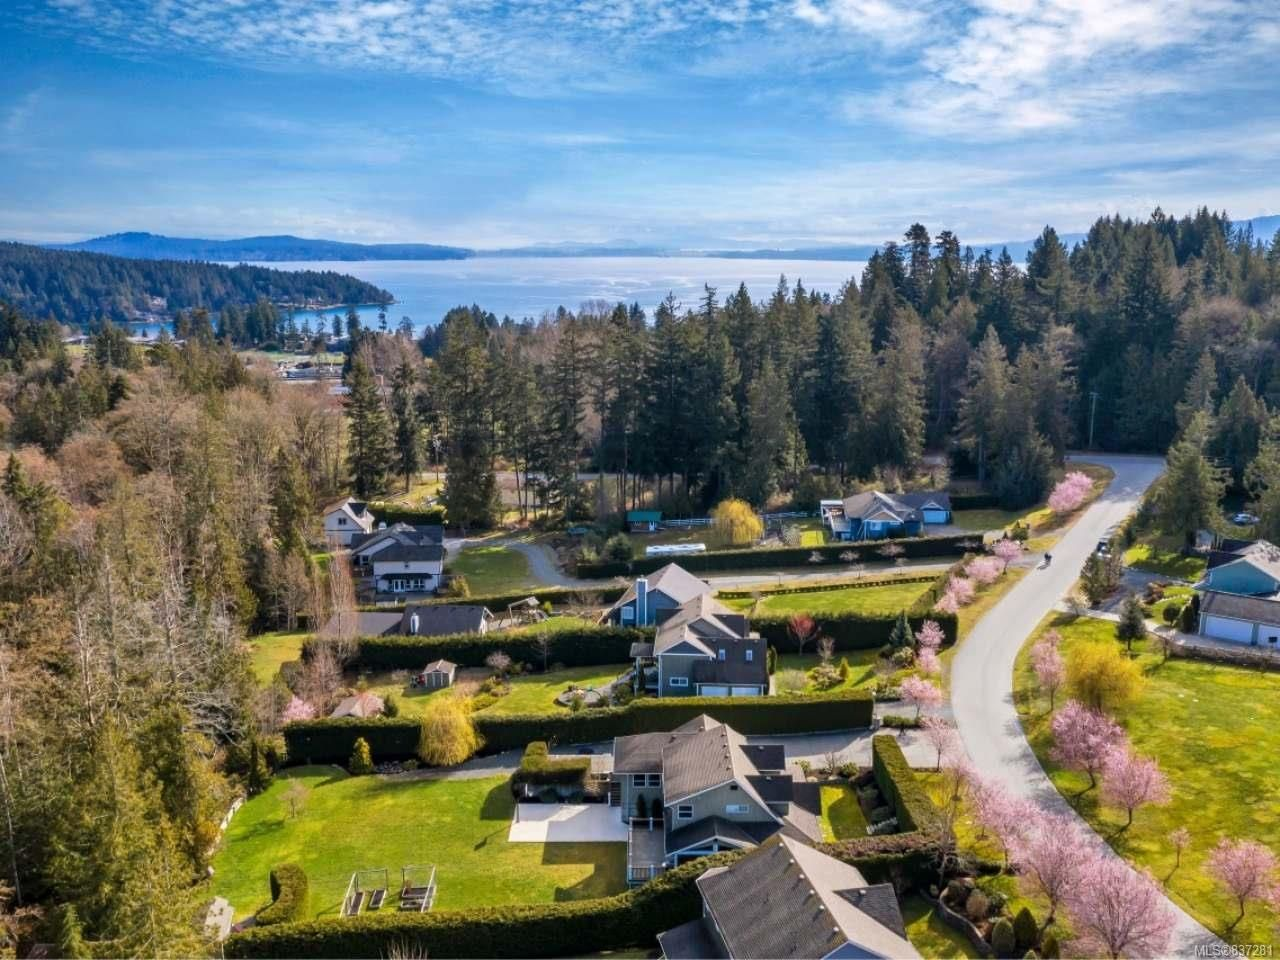 Photo 8: Photos: 925 Lilmac Rd in MILL BAY: ML Mill Bay House for sale (Malahat & Area)  : MLS®# 837281